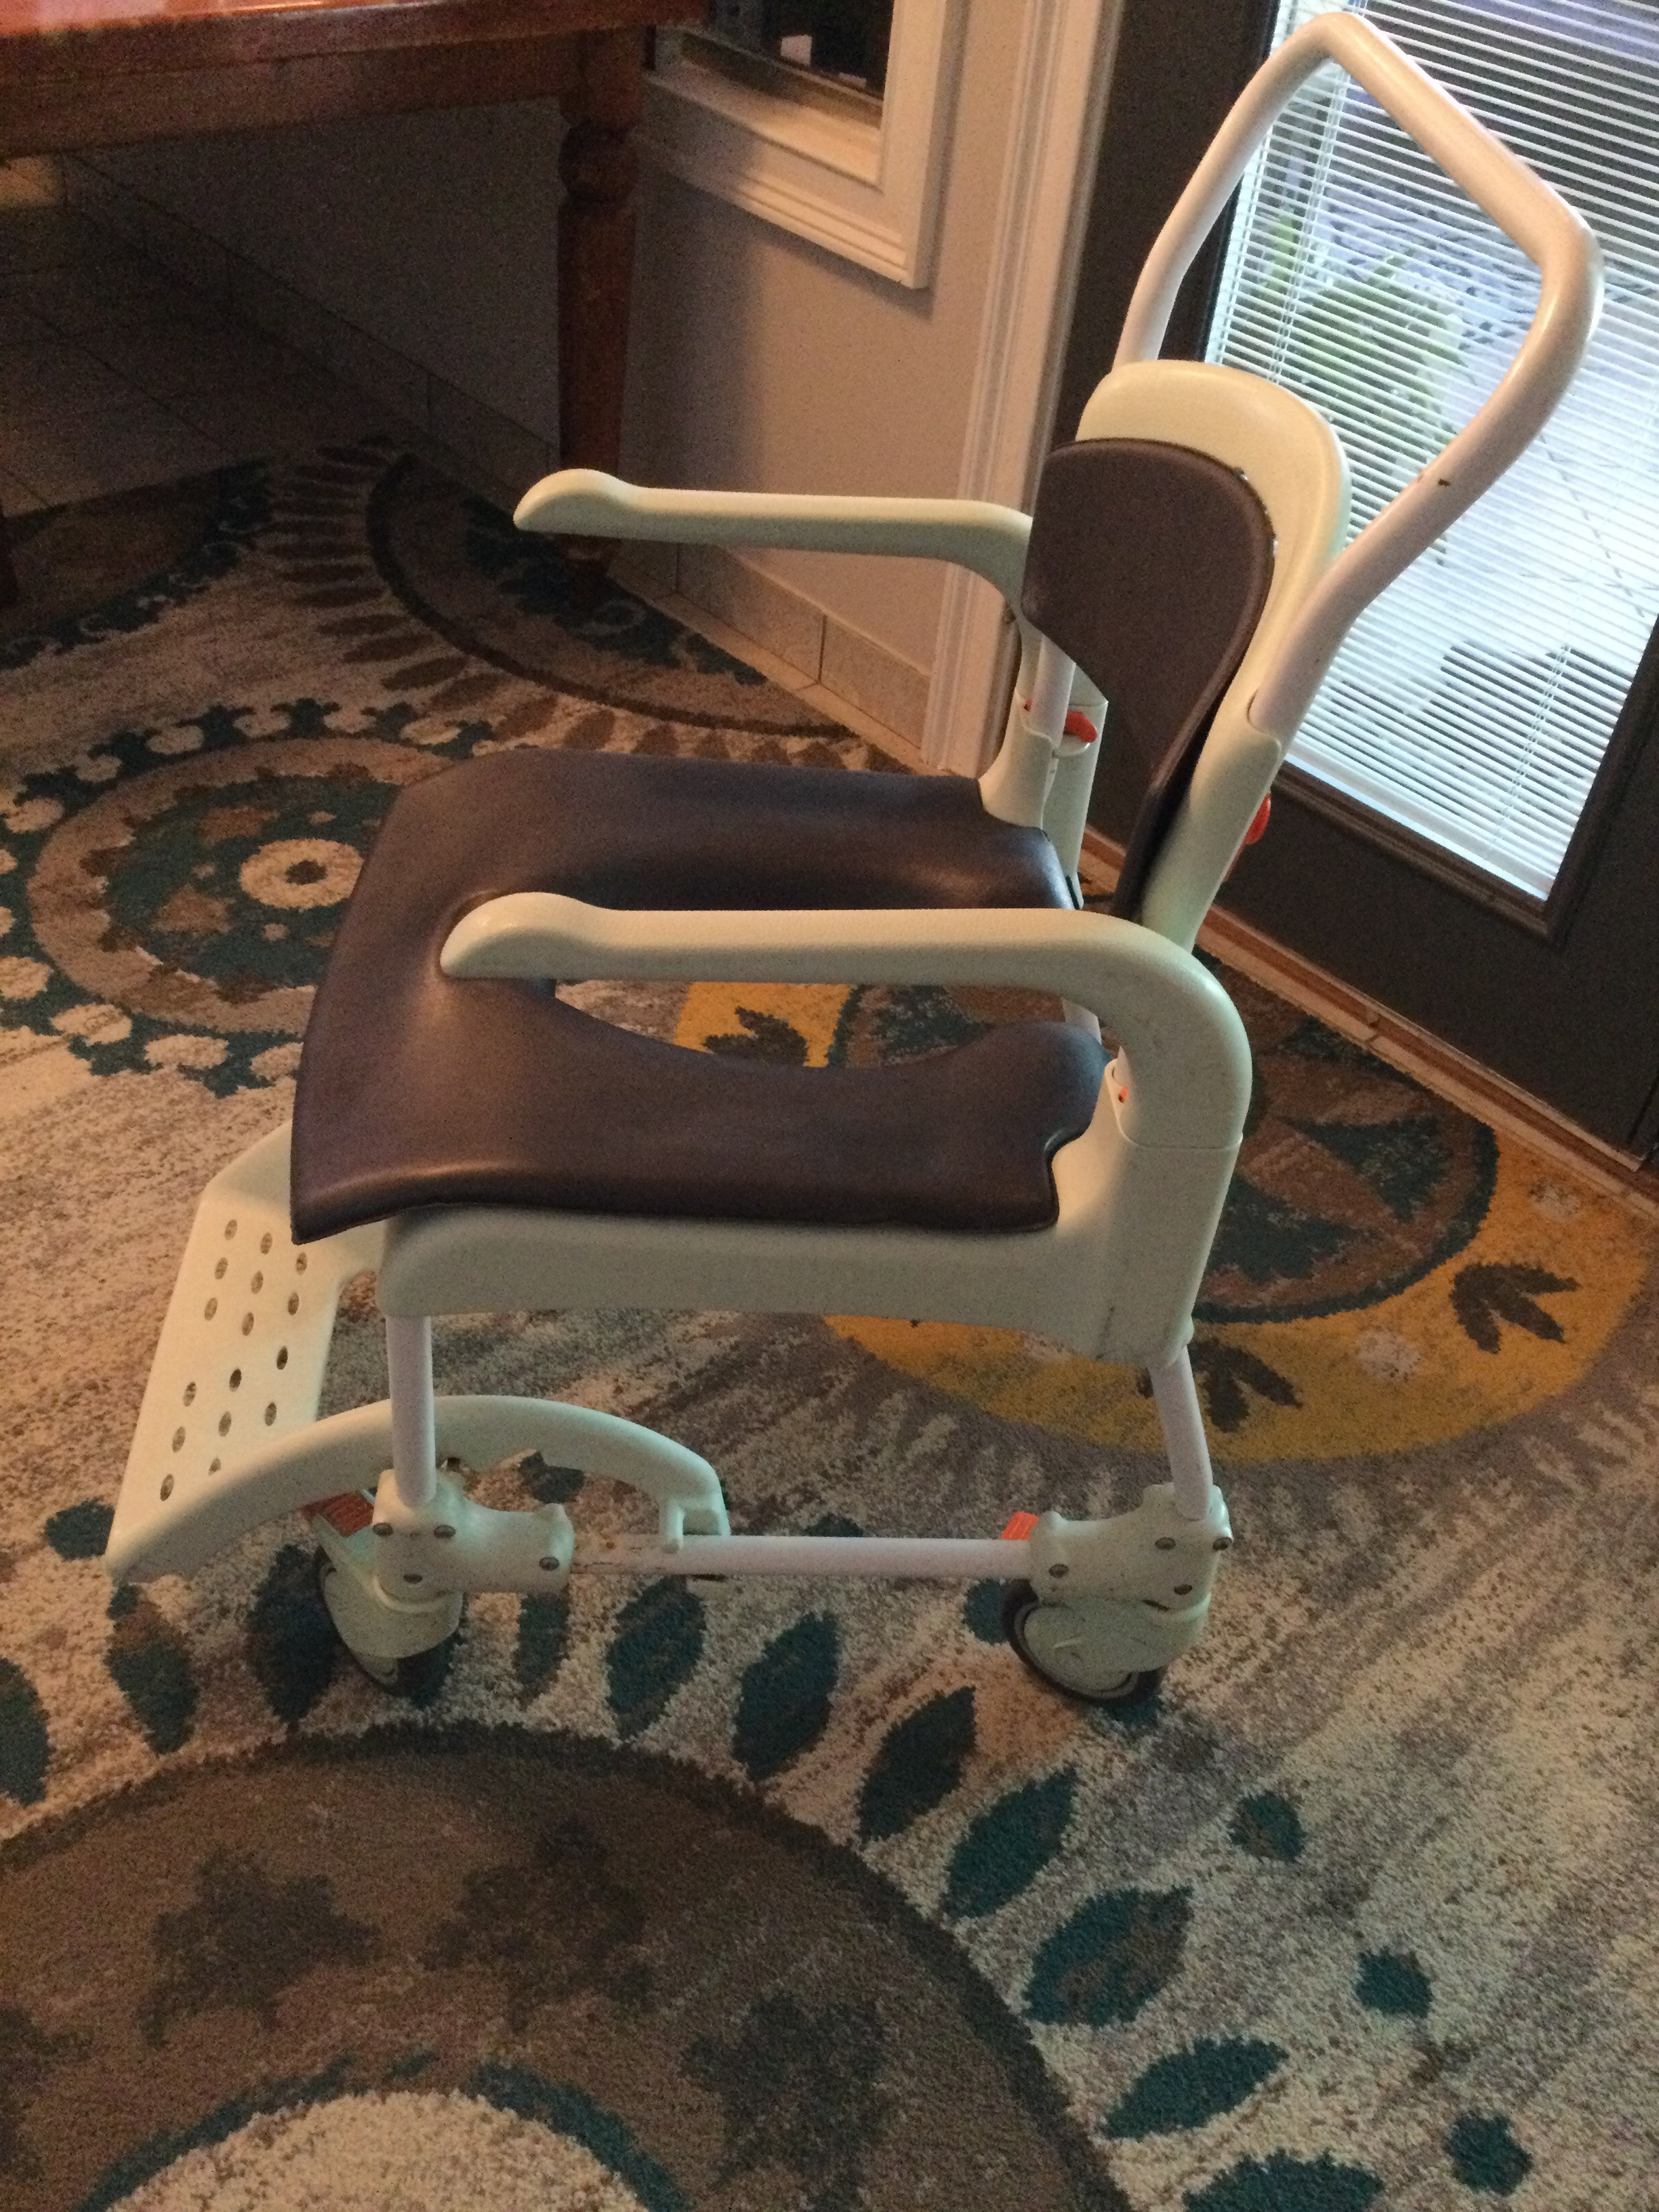 Photo 2 of Etac Commode Shower Chair